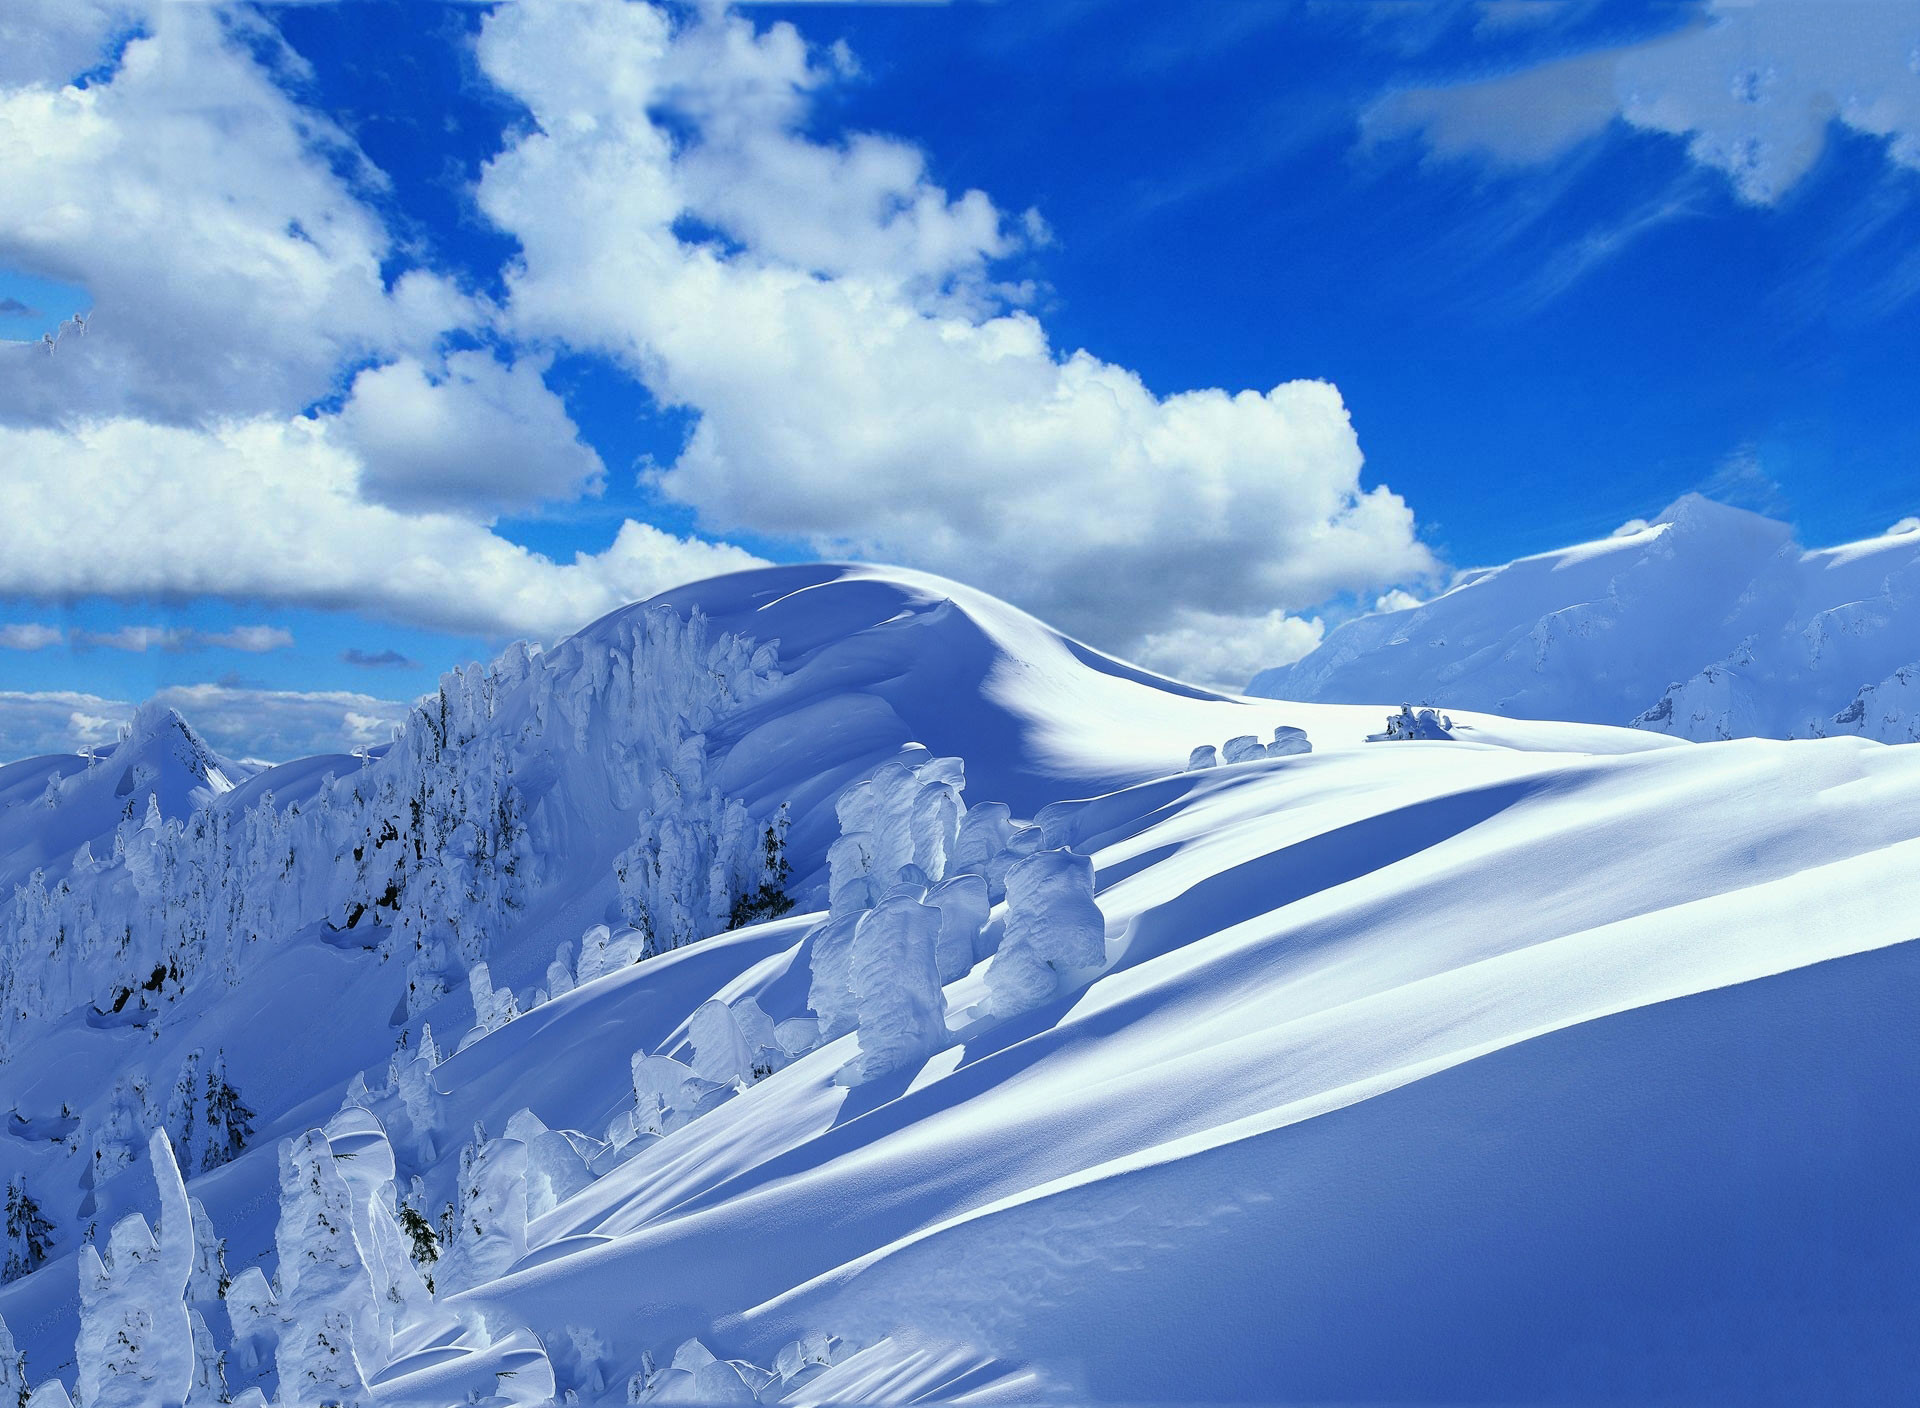 Snowy Background With Mountain: Snowy Mountains Wallpaper (77+ Images